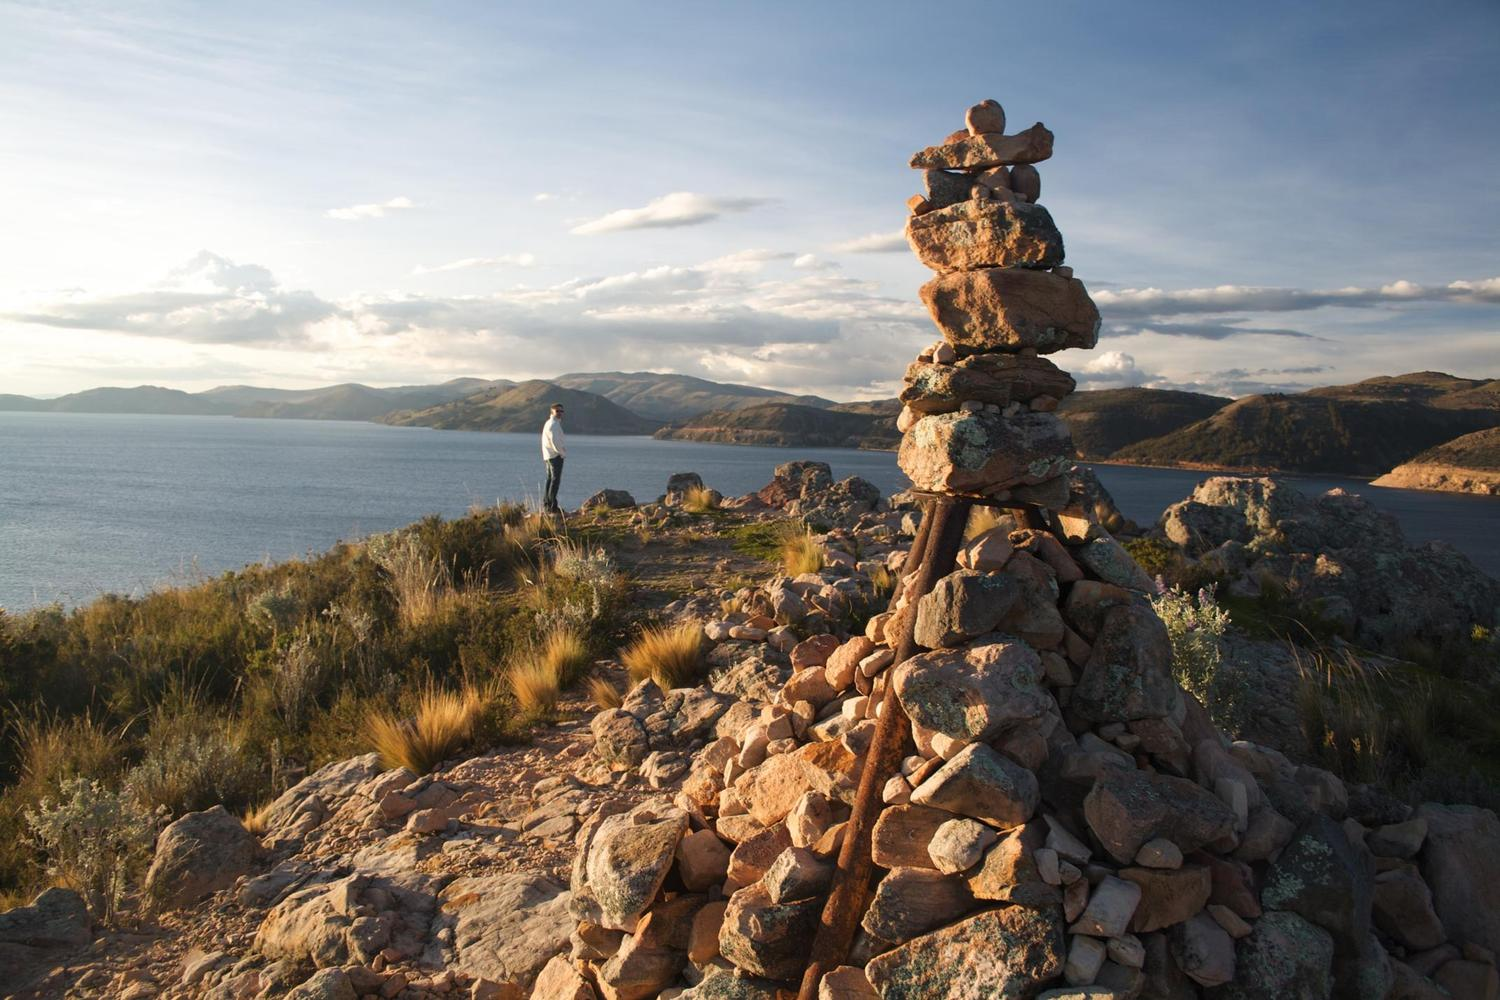 Sunset over Lake Titicaca from the top of Suasi Island